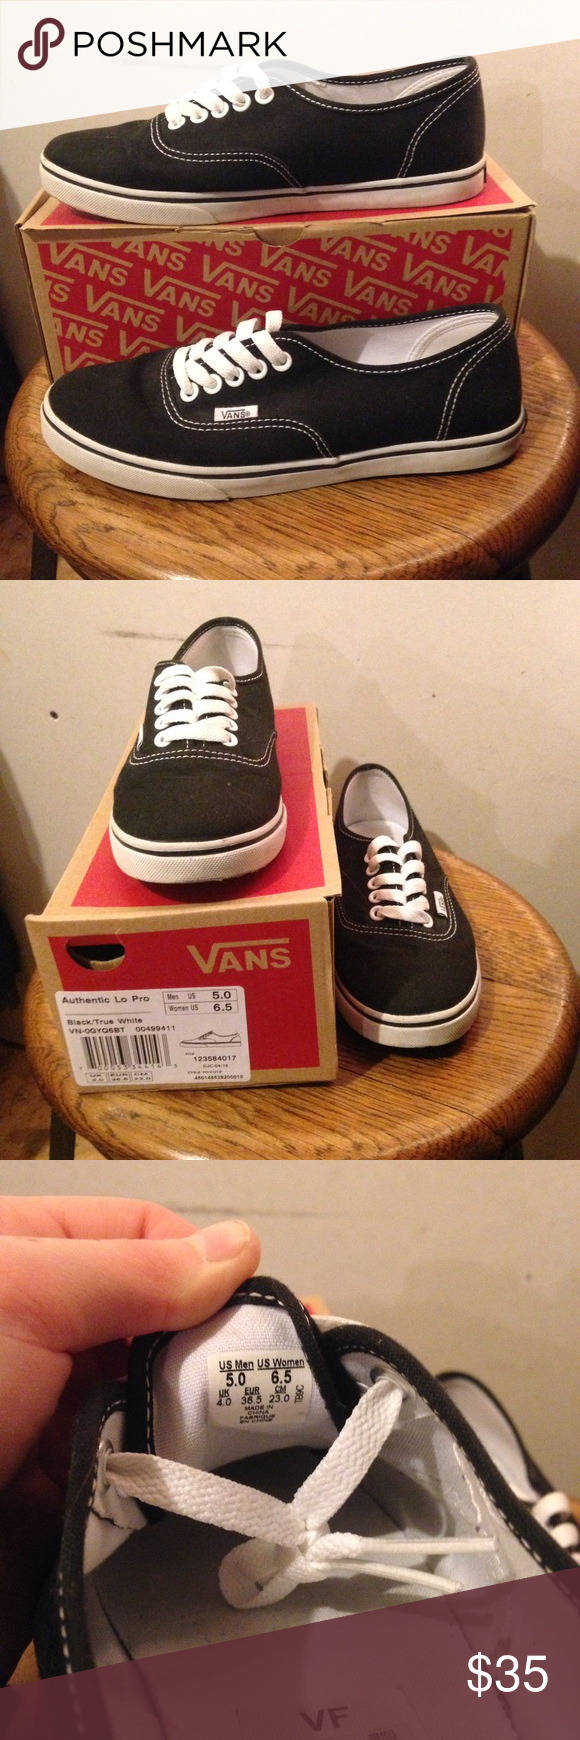 Vans Hardly worn - like new. Super cute and go with any outfit! Vans Shoes Sneakers